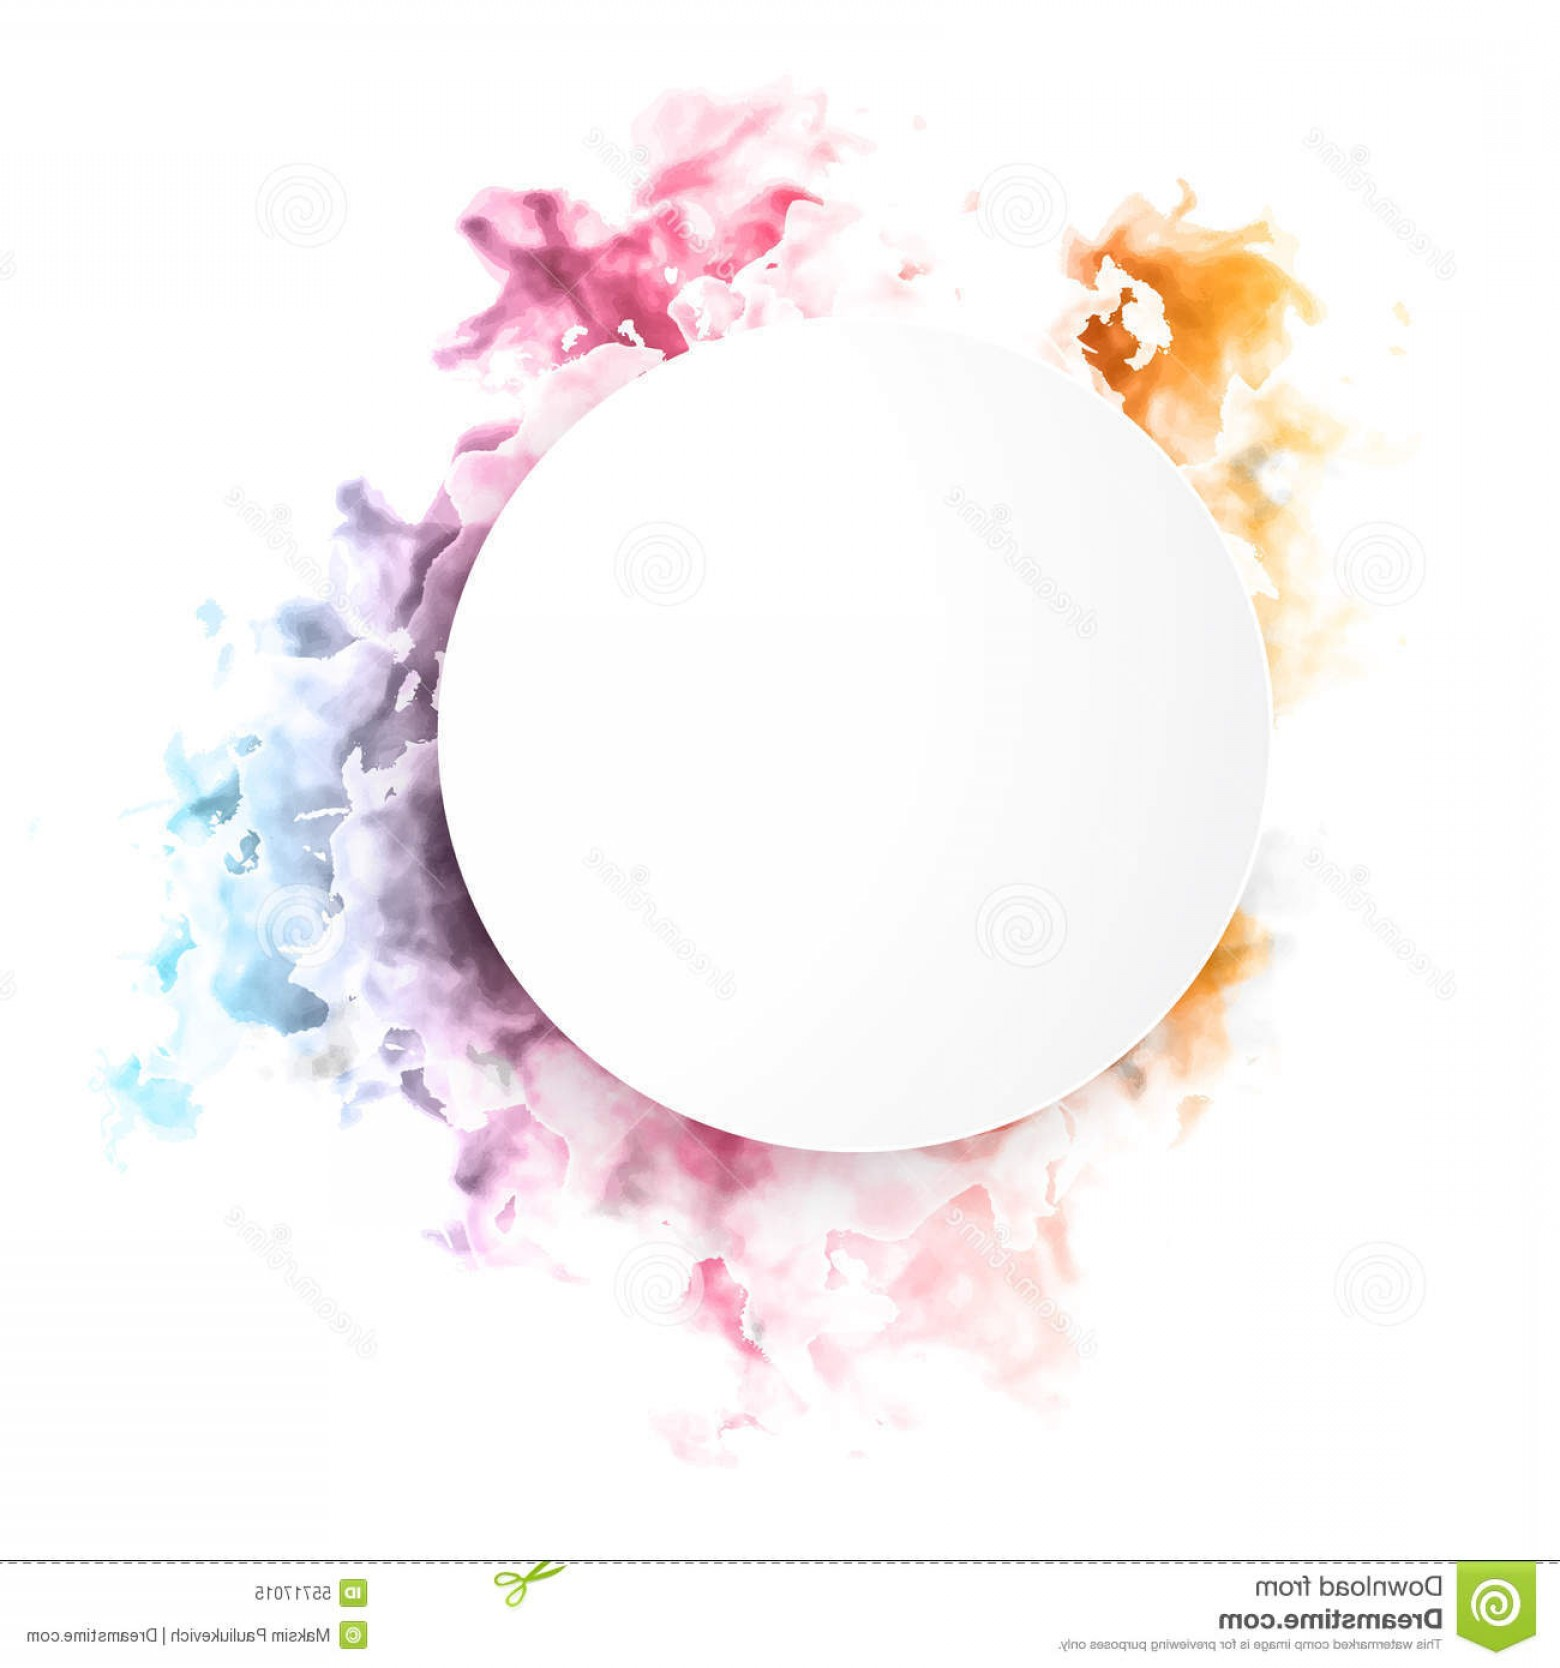 Color Smoke Vector: Stock Illustration Vector Color Cloud Floral Background Smoke Watercolor Texture Image